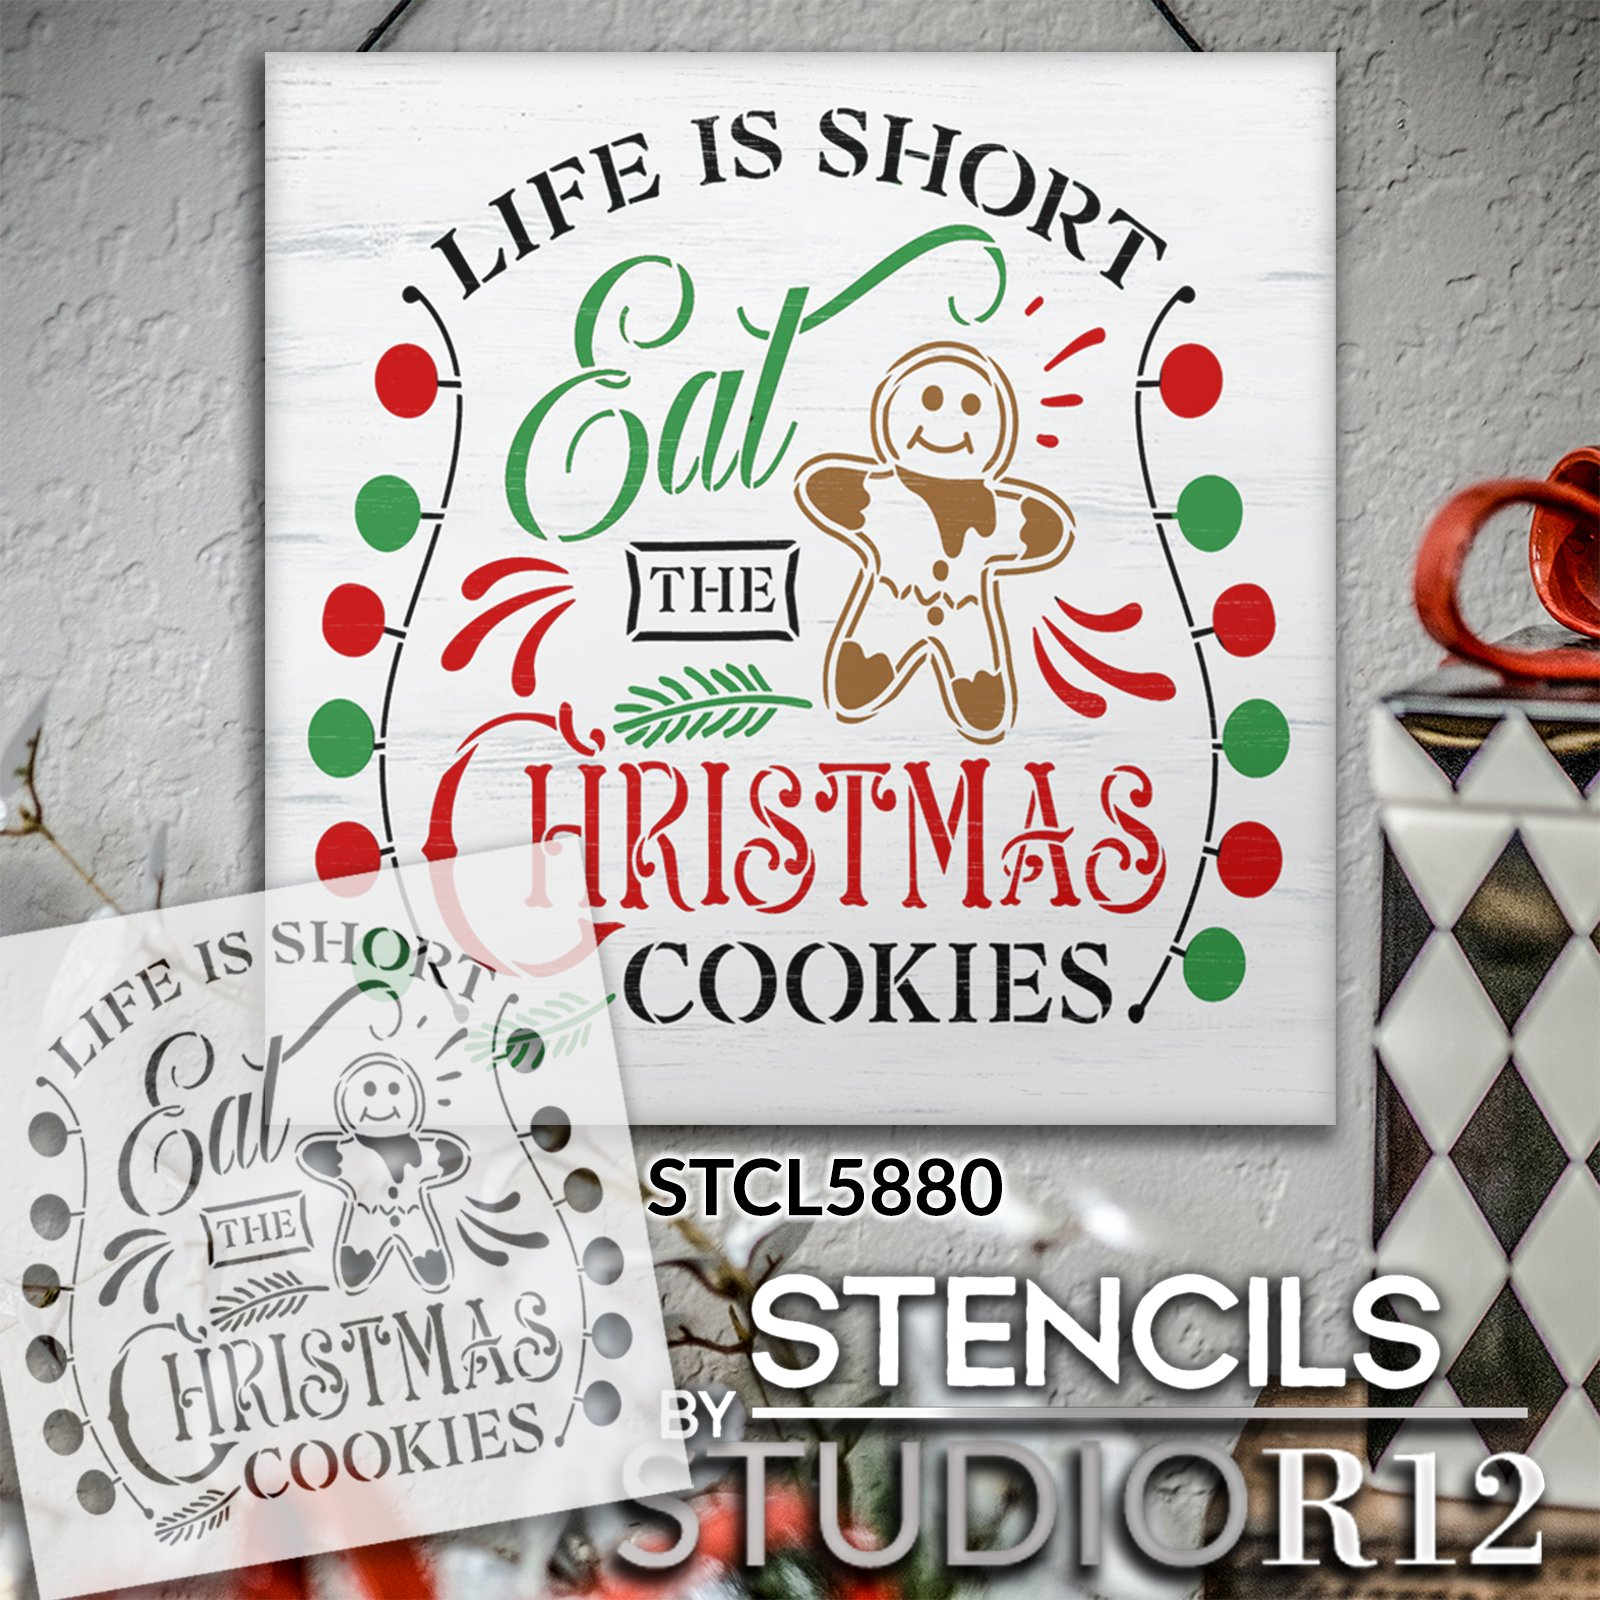 Life is Short Eat The Christmas Cookies Stencil by StudioR12 | Craft DIY Holiday Home Decor | Paint Wood Sign | Reusable Mylar Template | Select Size